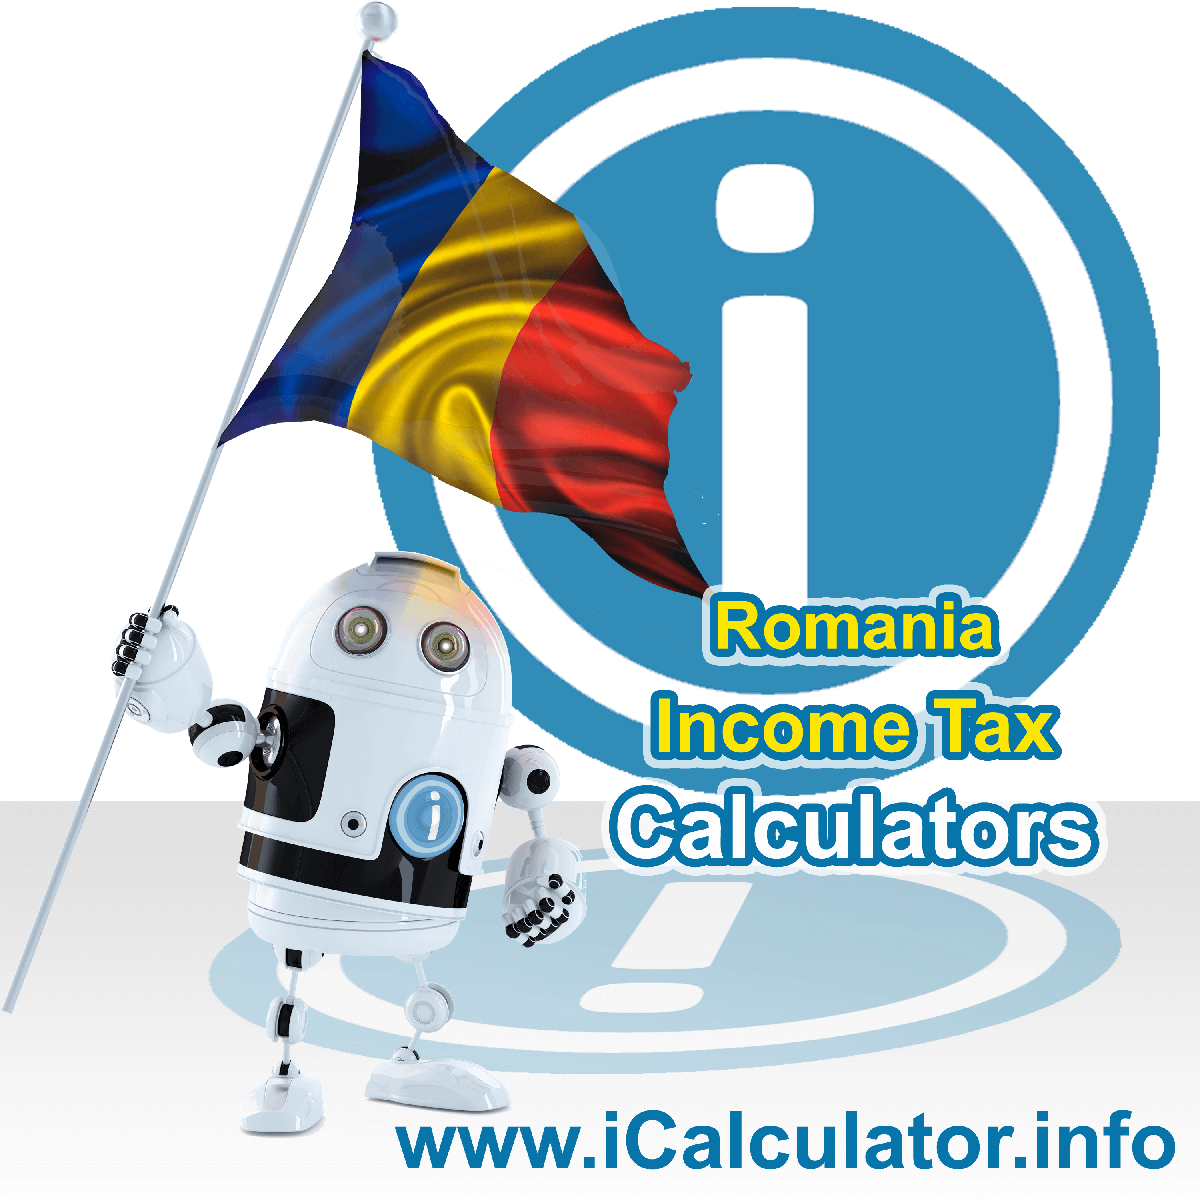 Romania Income Tax Calculator. This image shows a new employer in Romania calculating the annual payroll costs based on multiple payroll payments in one year in Romania using the Romania income tax calculator to understand their payroll costs in Romania in 2021